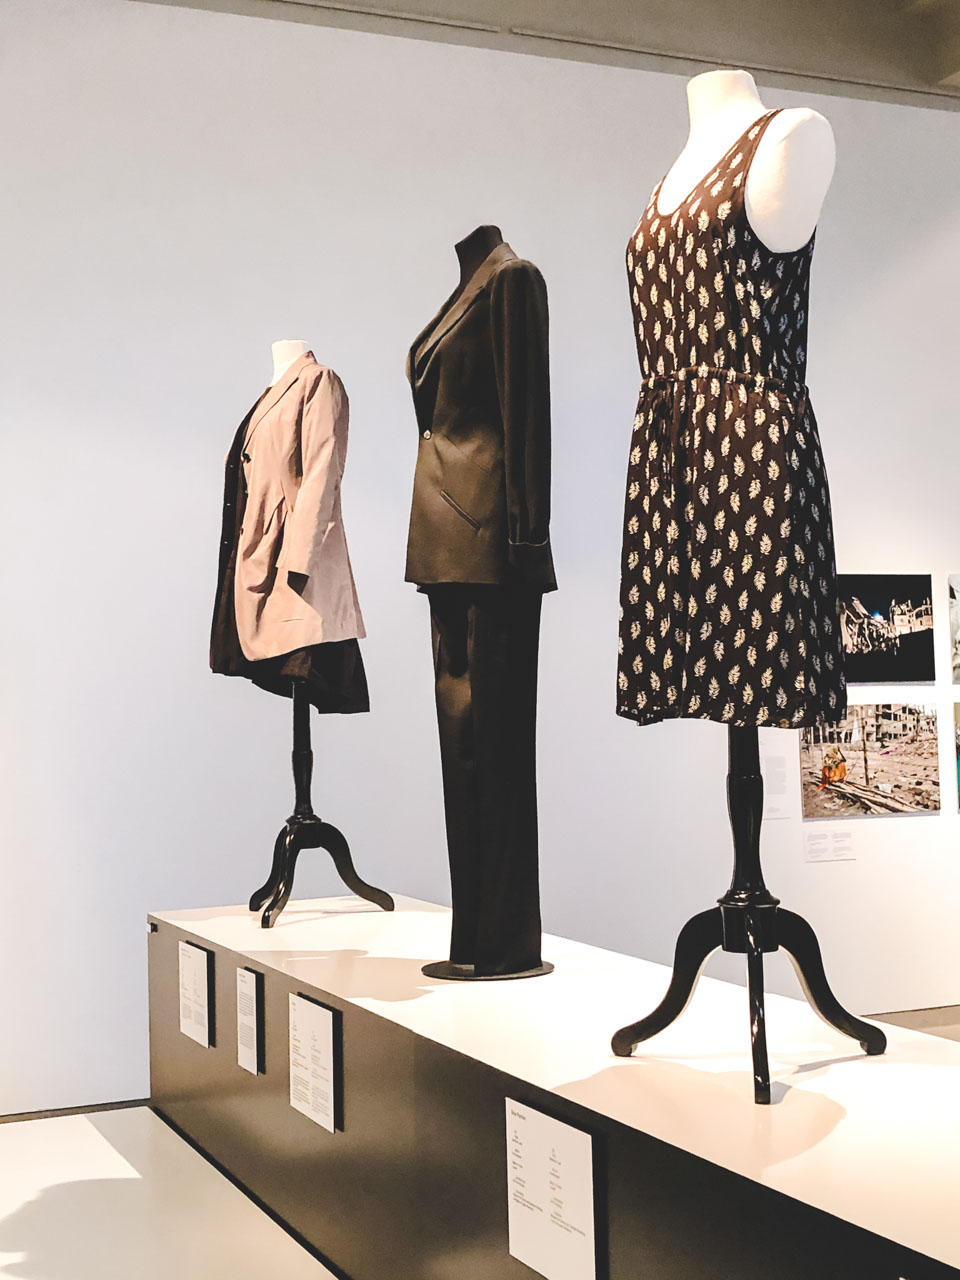 Dresses, a suit and a blazer on display at the Museum of European Cultures in Berlin